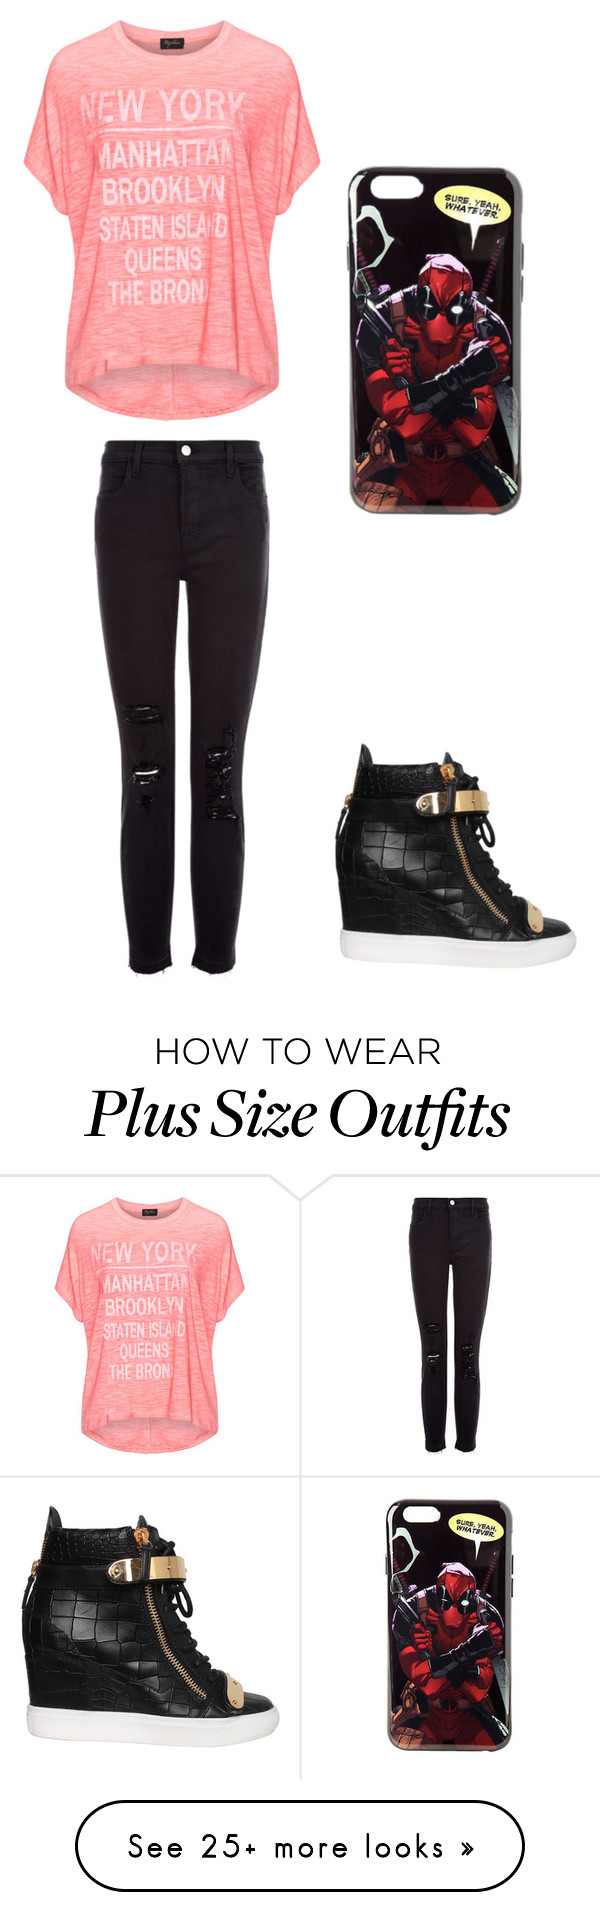 """Untitled #366"" by larisatwilight on Polyvore featuring Replace, J Brand and Giuseppe Zanotti"